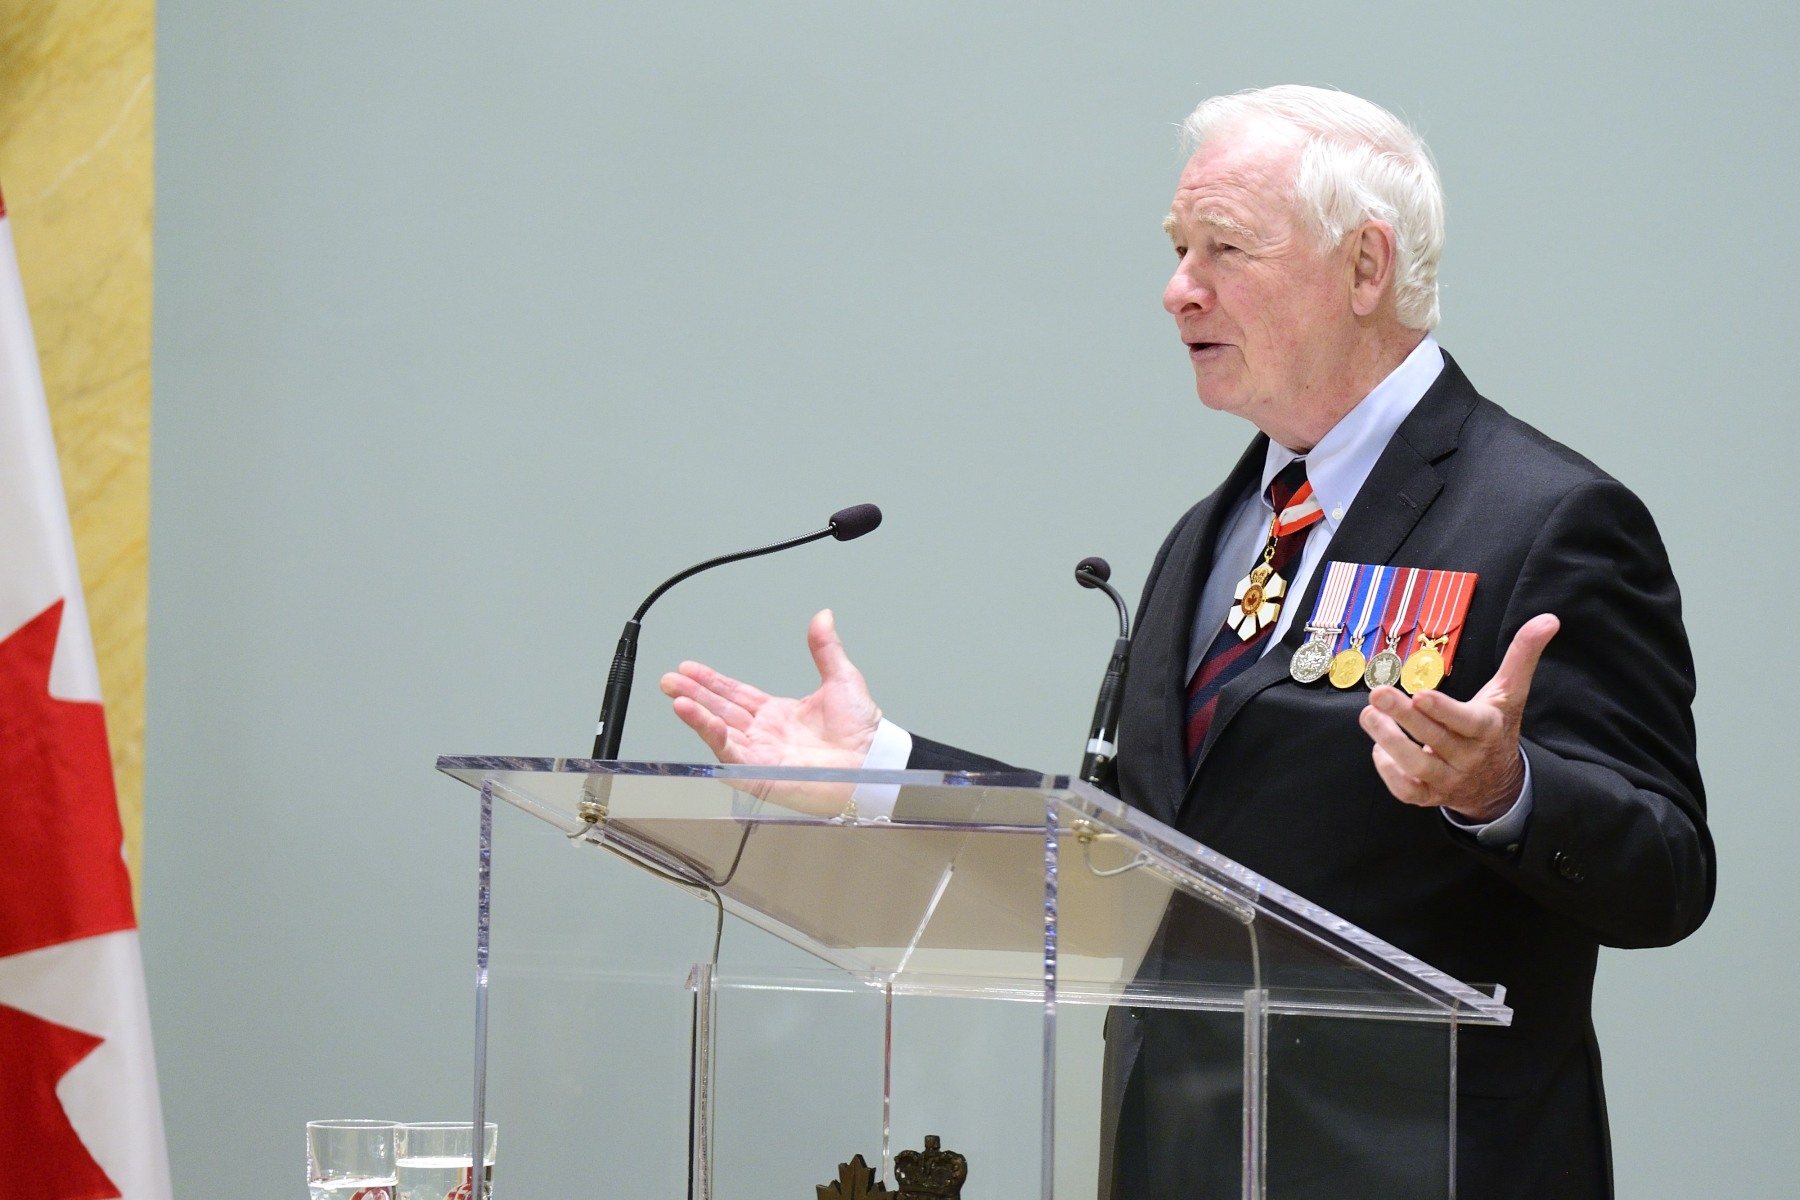 """I'm delighted to recognize some of Canada's most caring individuals with the inaugural presentation of the Sovereign's Medal for Volunteers,"" said the Governor General. ""Each recipient was nominated for the medal from within their community, making this celebration a wonderful reflection of generosity across Canada during National Volunteer Week."""